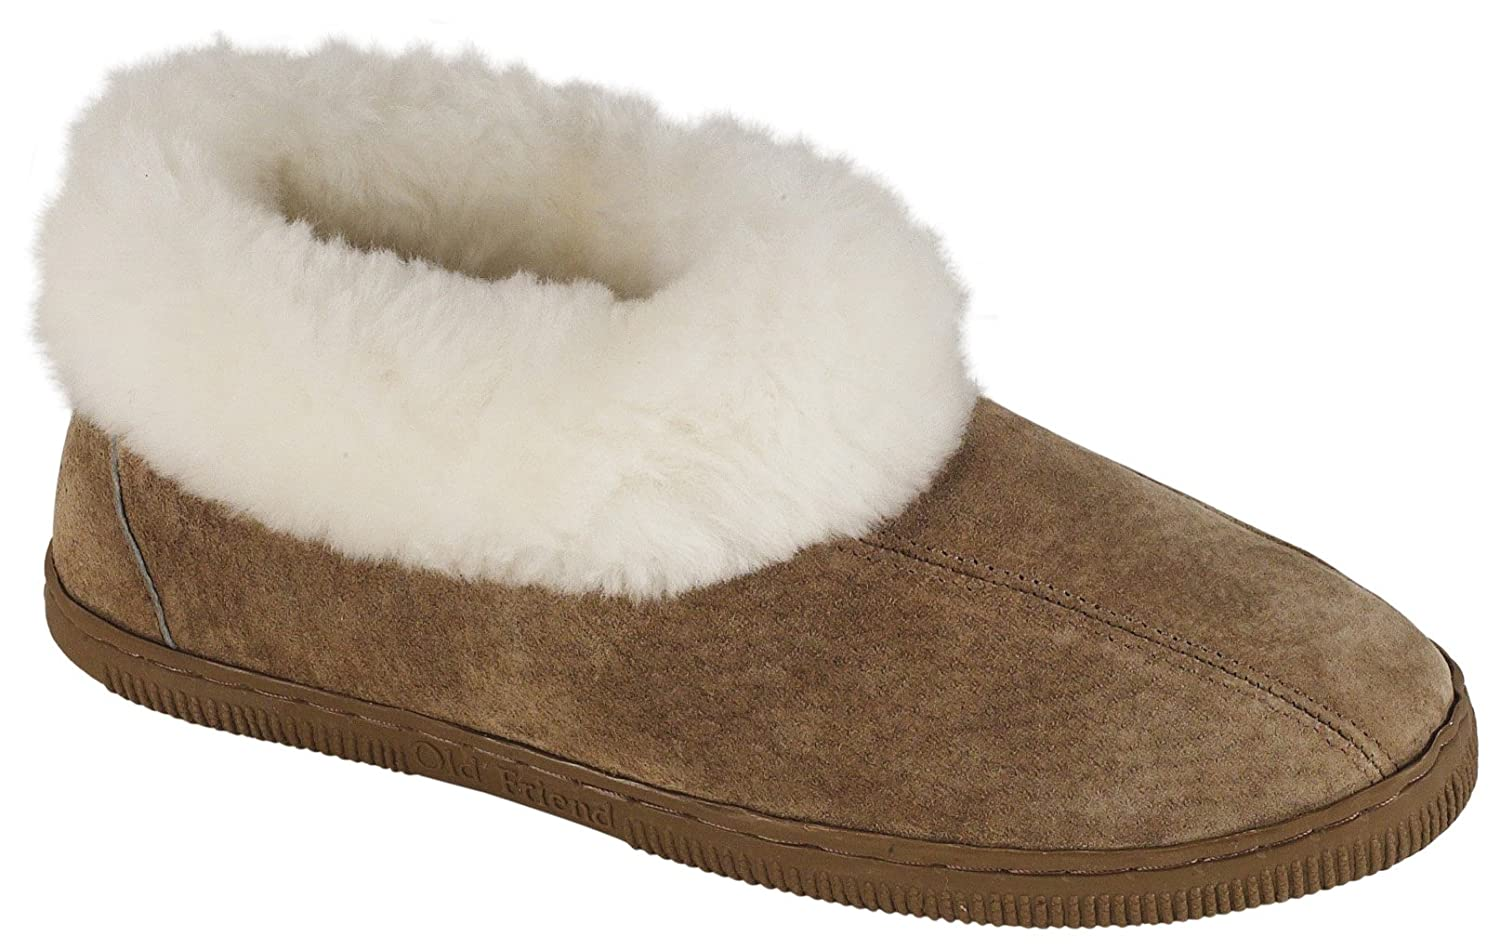 Old Friend Women's Juliet Moccasin B008E9QNKK 6 B(M) US|Tan